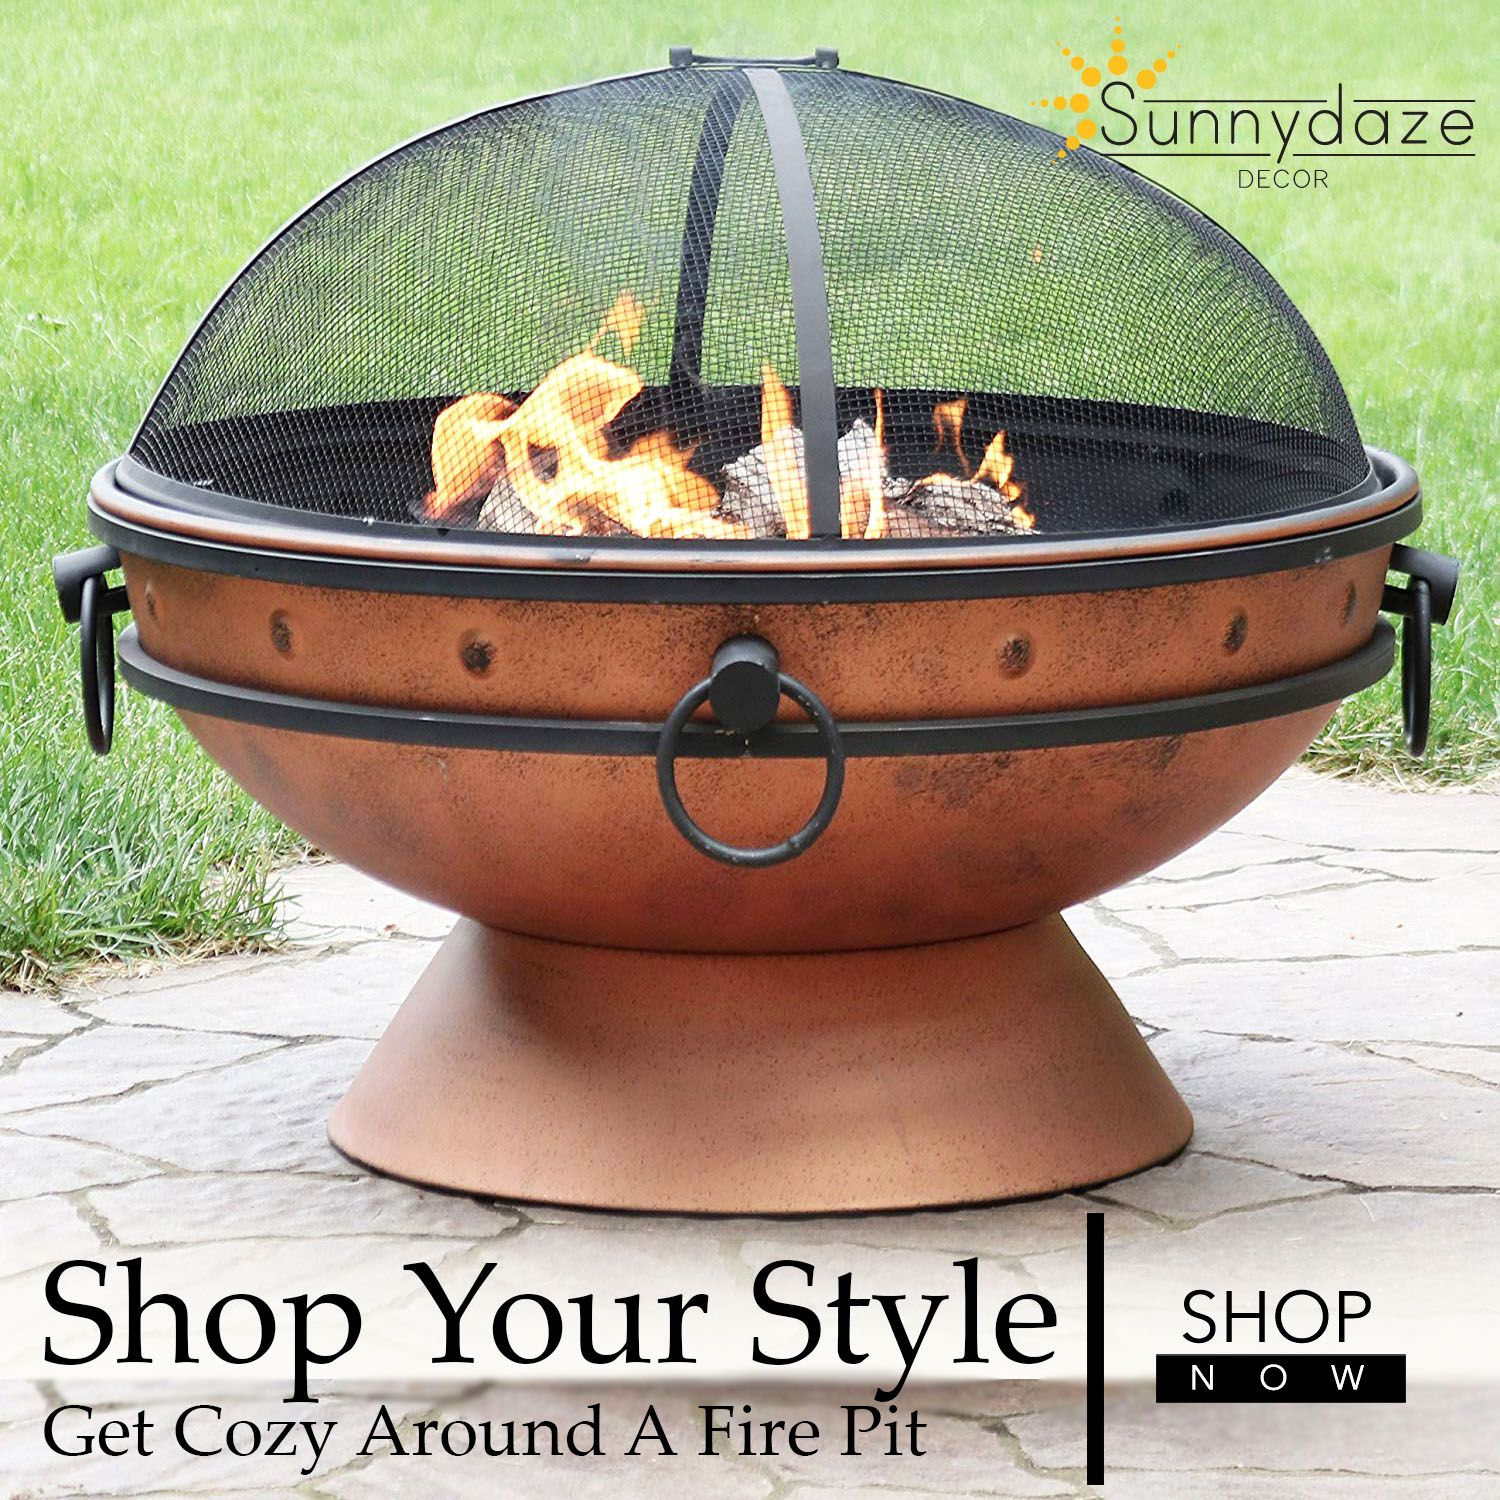 Bring A Beautiful Outdoor Wood Burning Fire Pit To Your Yard Patio Or Deck Sure To Please These Wonderful Backyard Wood Burning Fire Pit Copper Fire Pit Fire Pit Designs